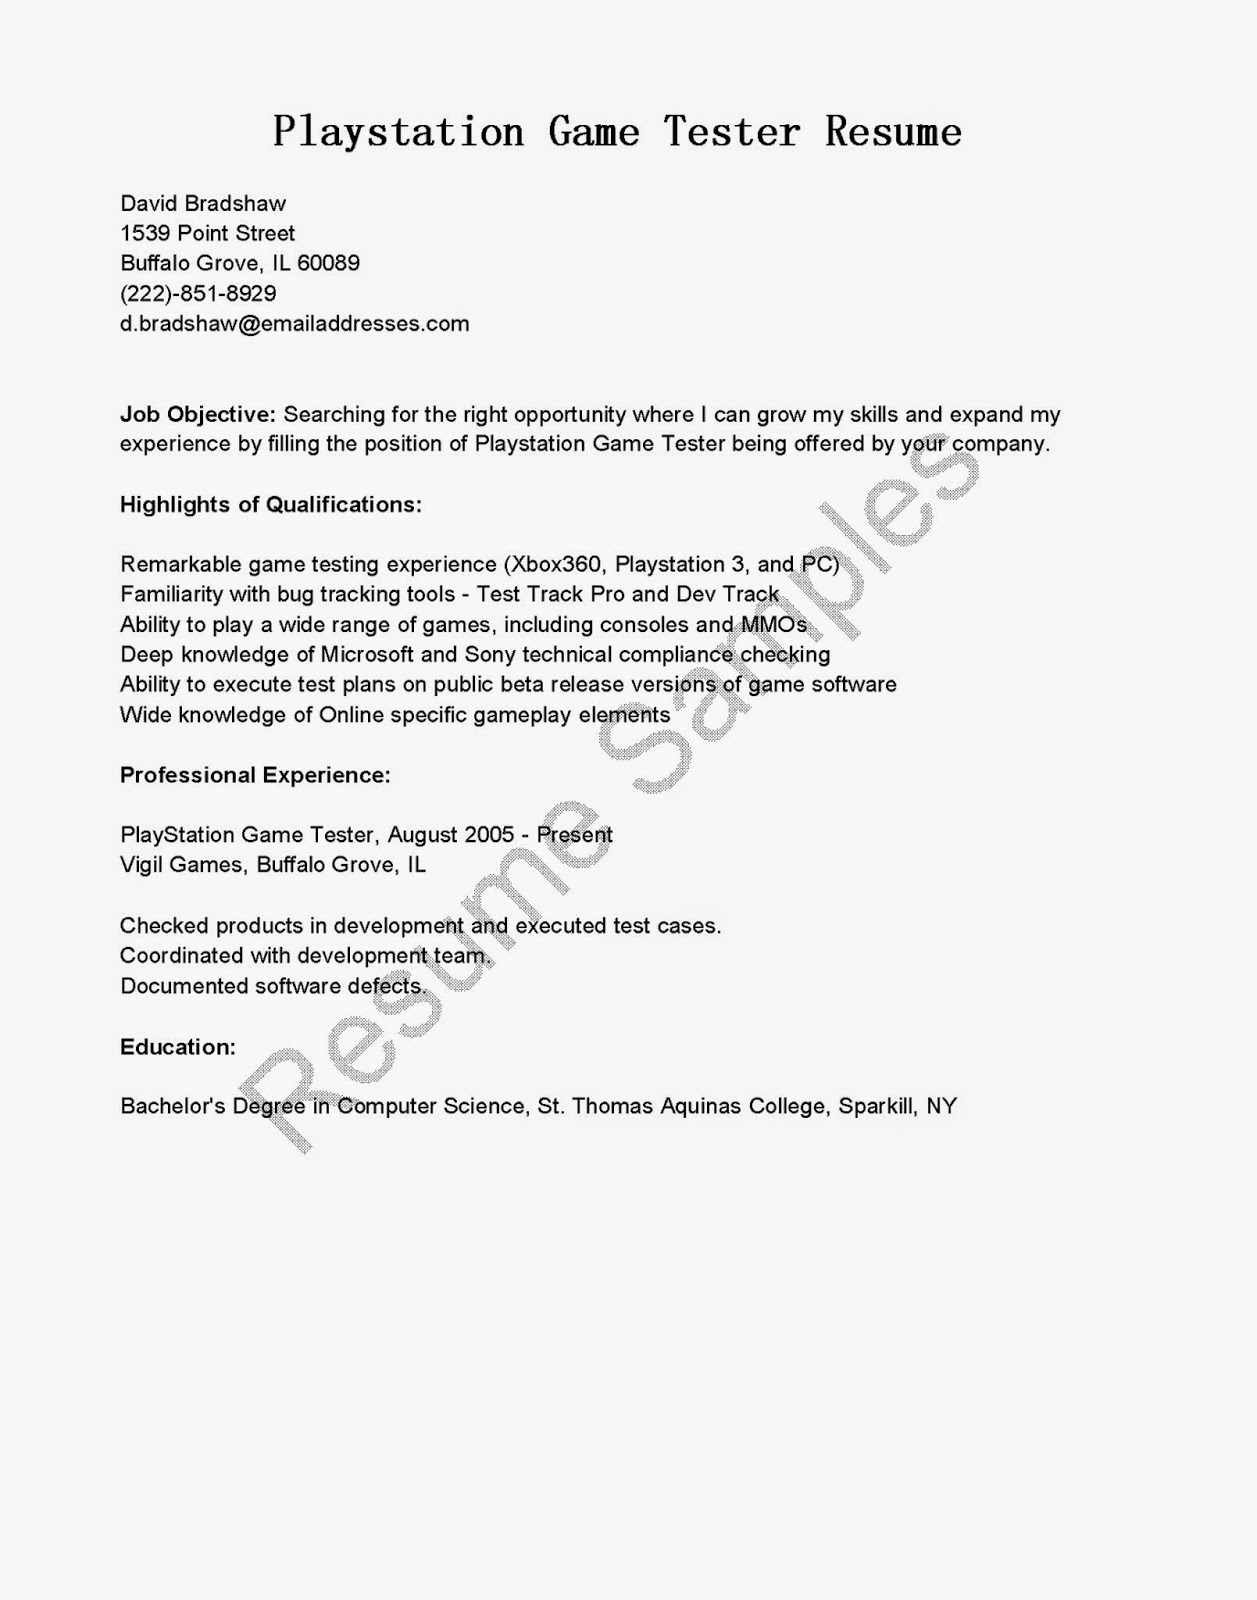 resume samples playstation game tester resume sample